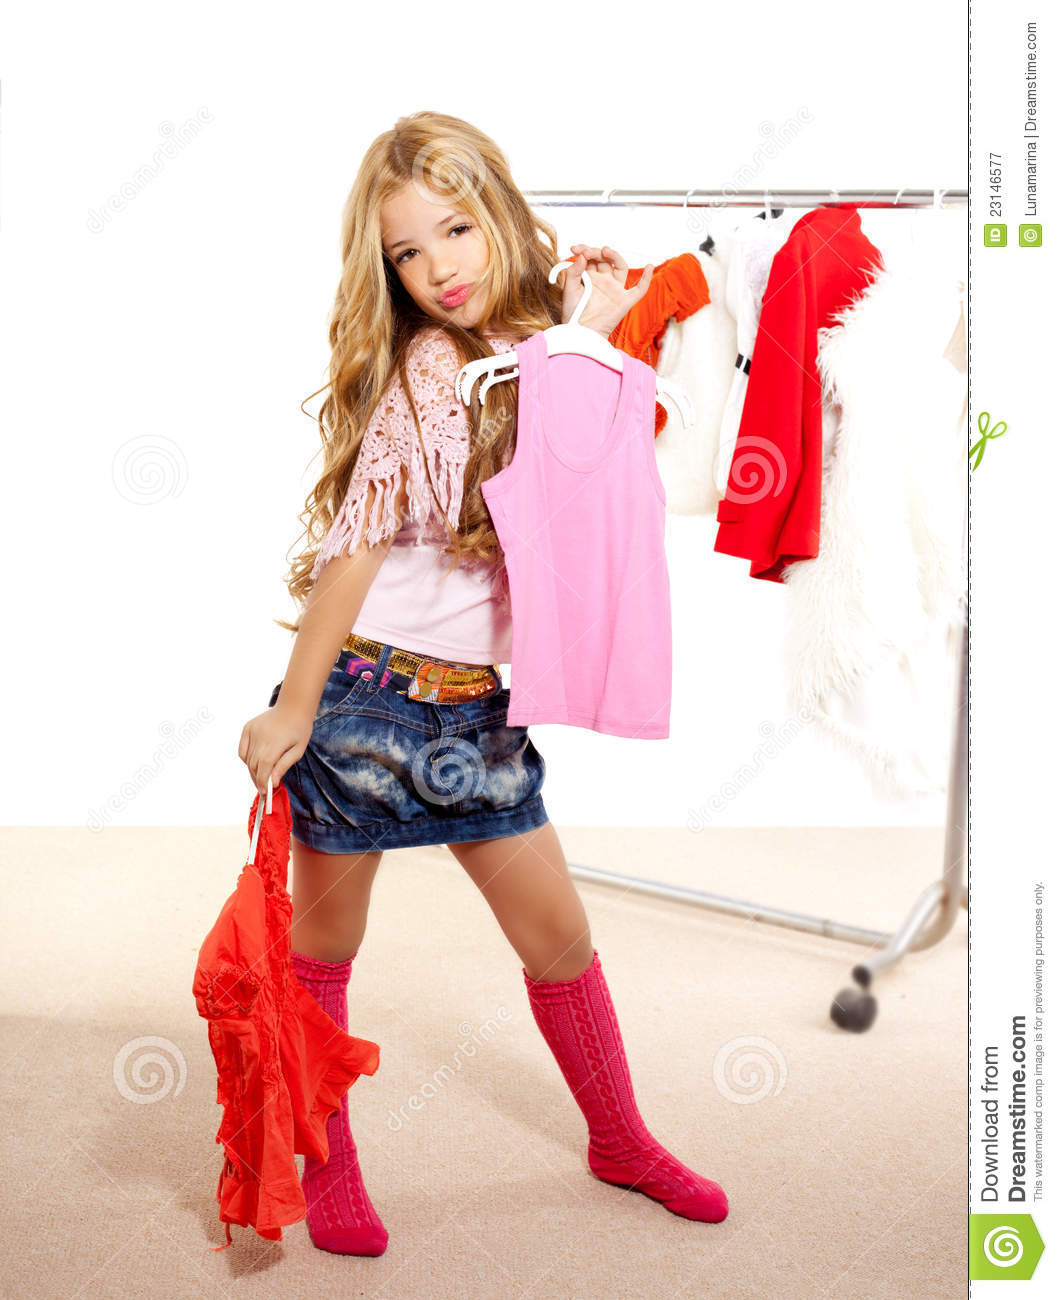 fashion-victim-kid-girl-backstage-wardrobe-23146577.jpg (1058×1300)